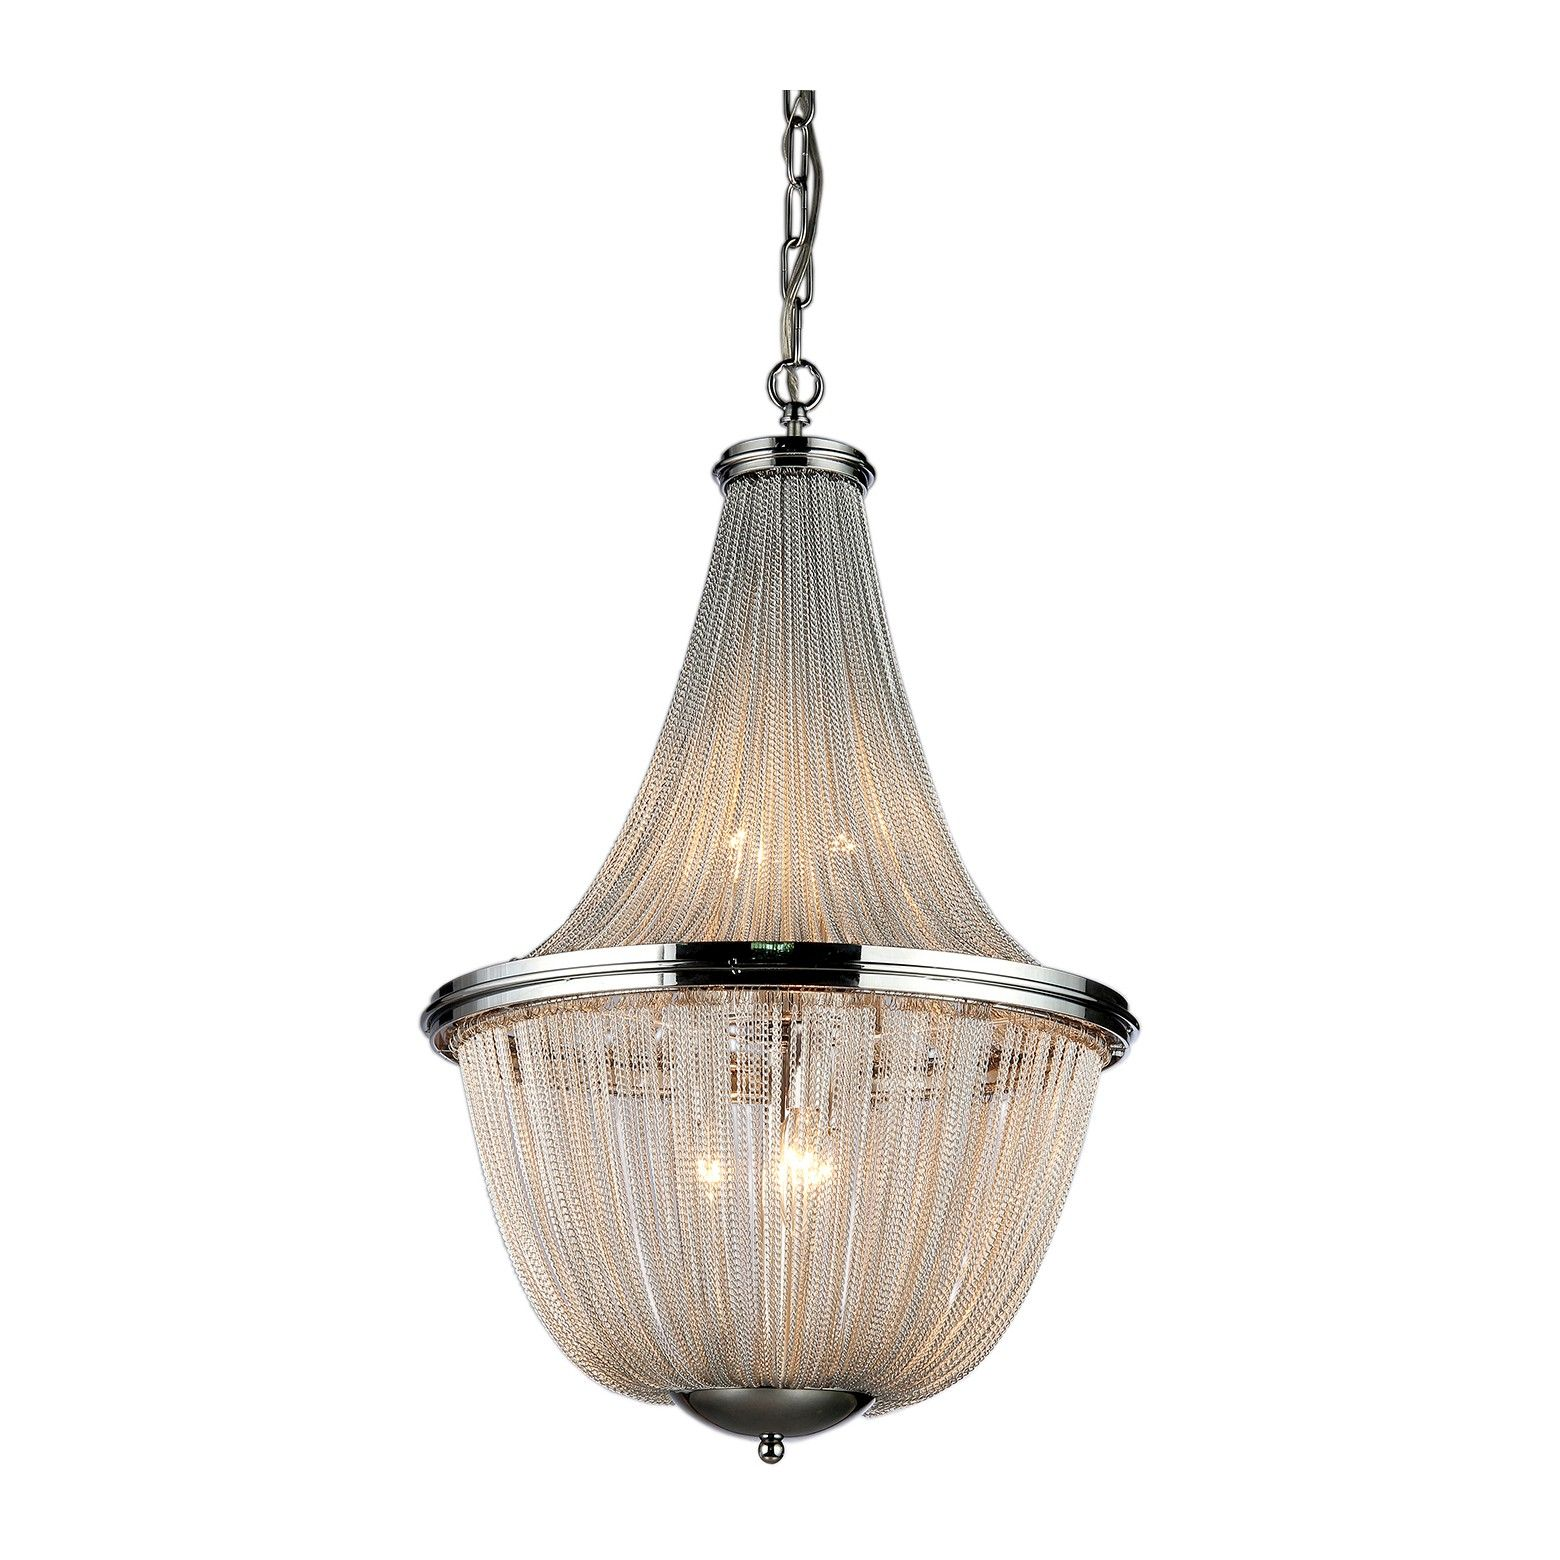 Warehouse Tiffany 18 X 18 X 6 Inch White Ceiling Lights